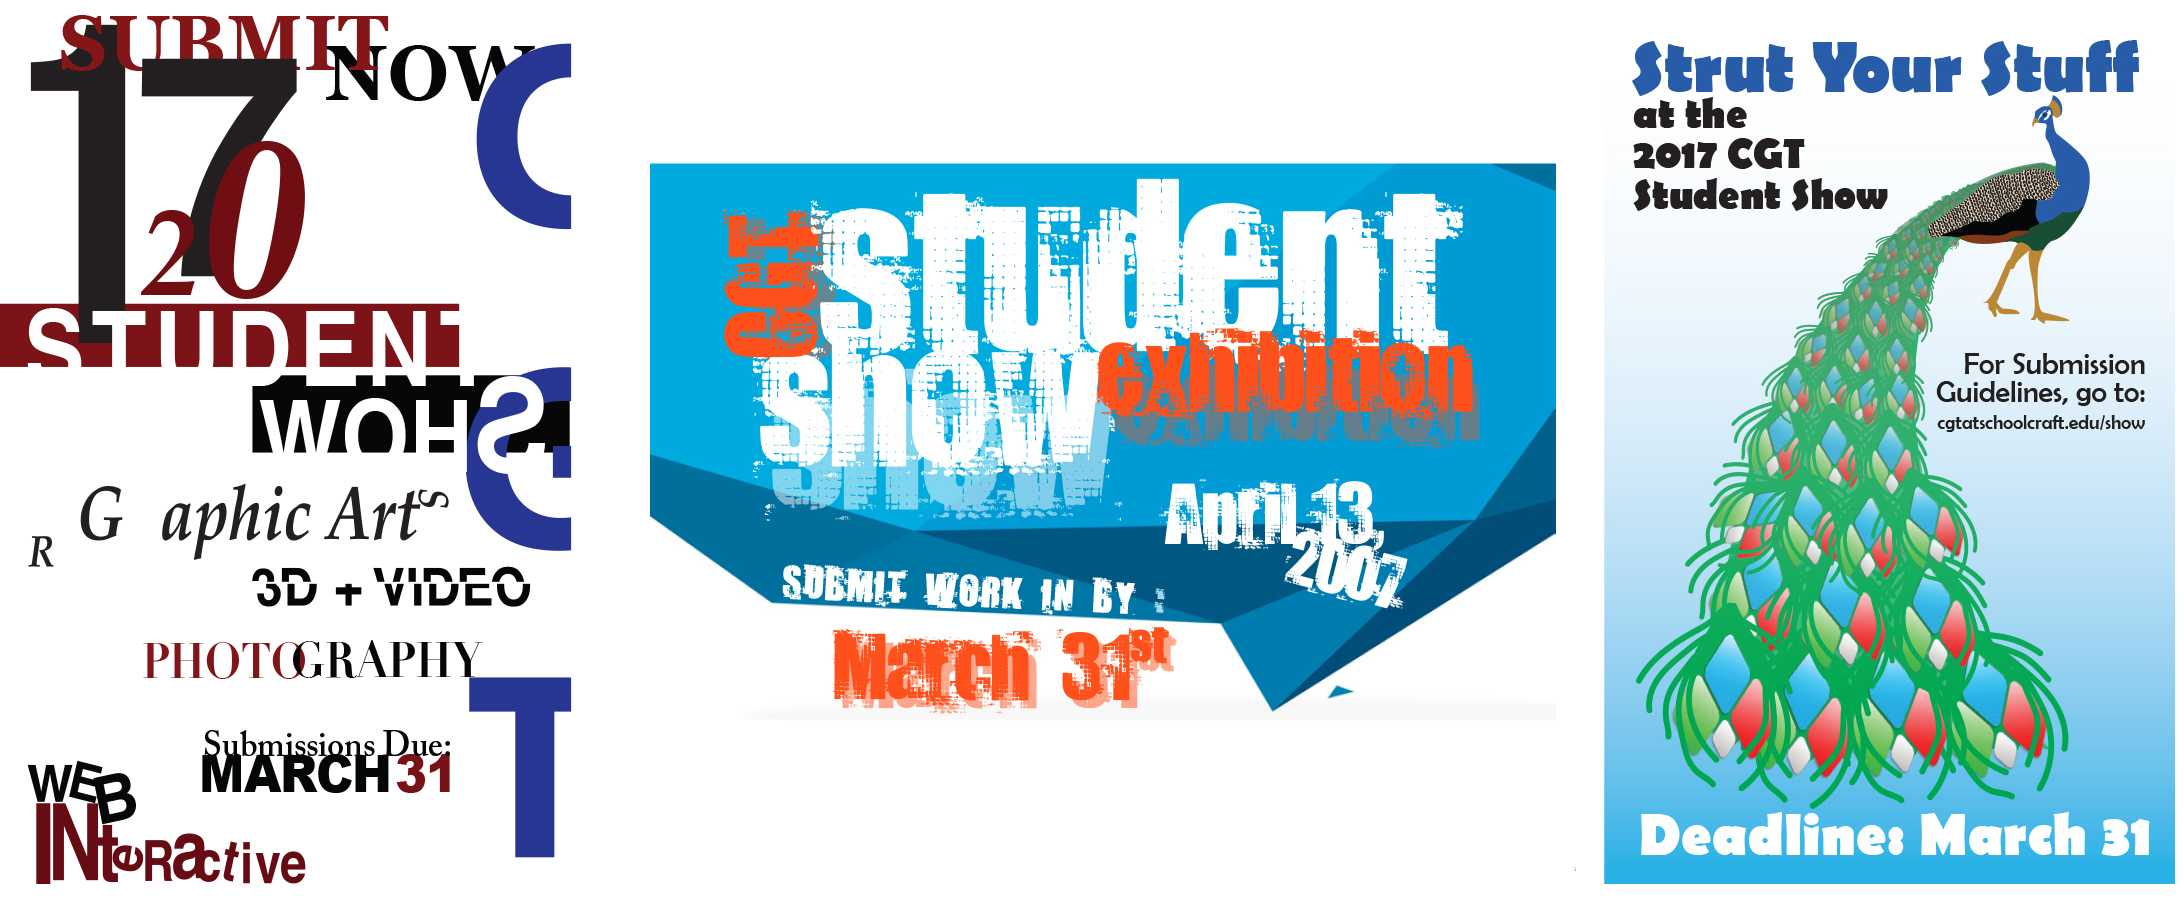 CGT Student Show Posters